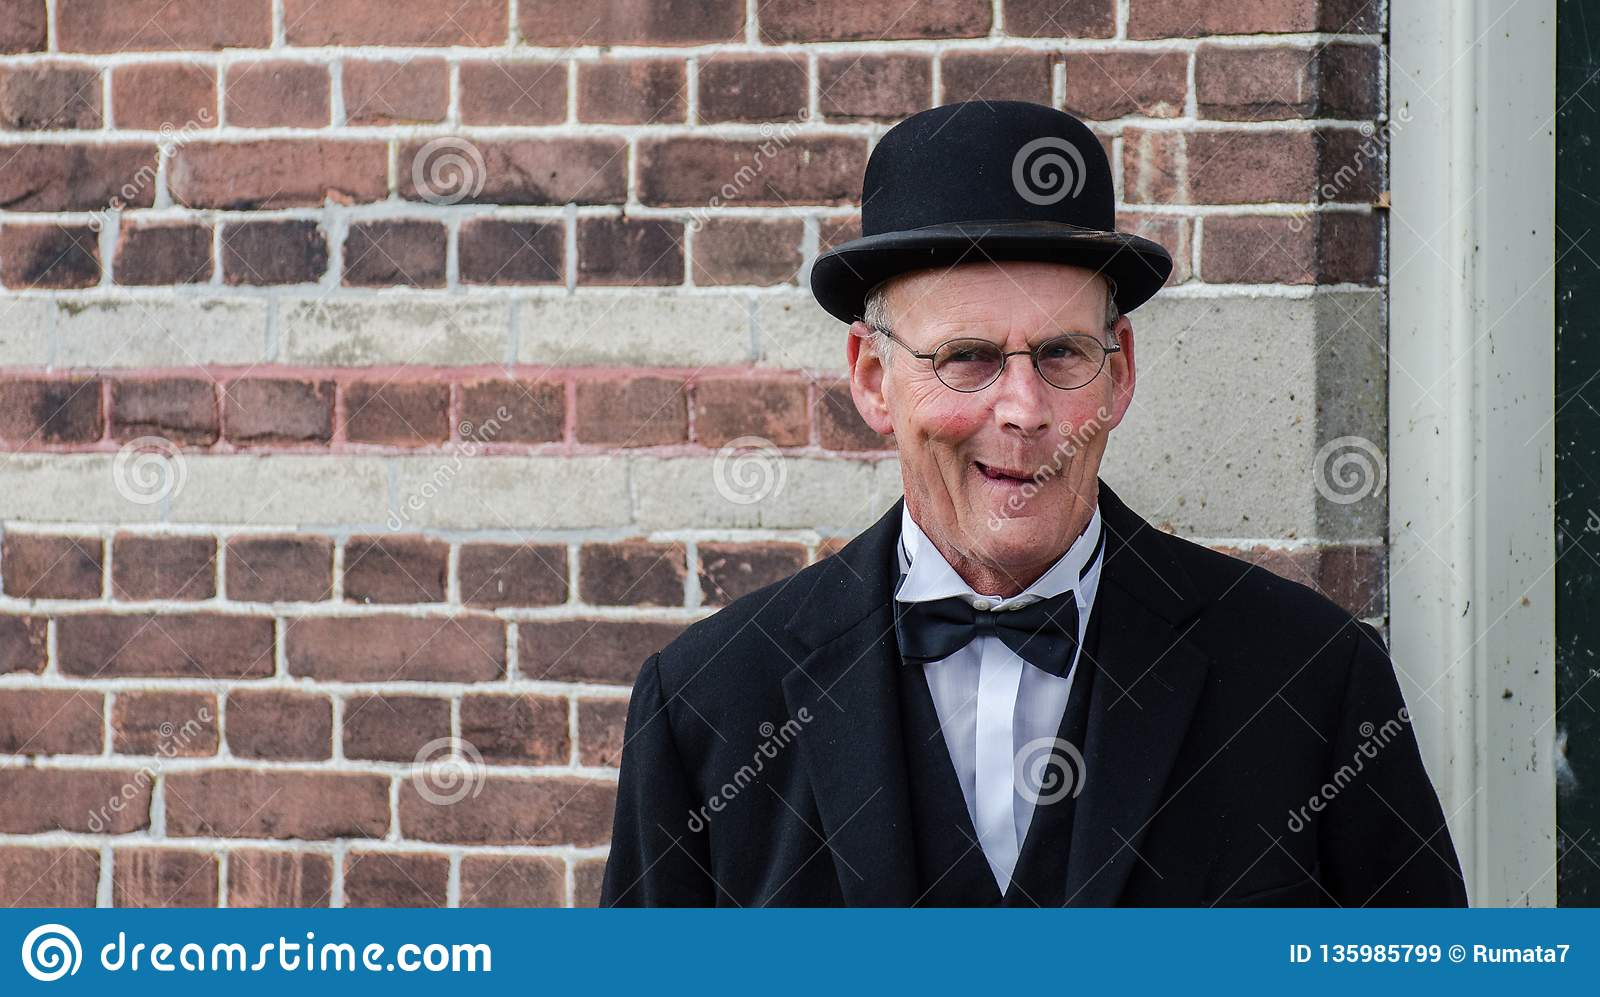 Funny dutch man with black bowler hat and glasses posing on brick wall background